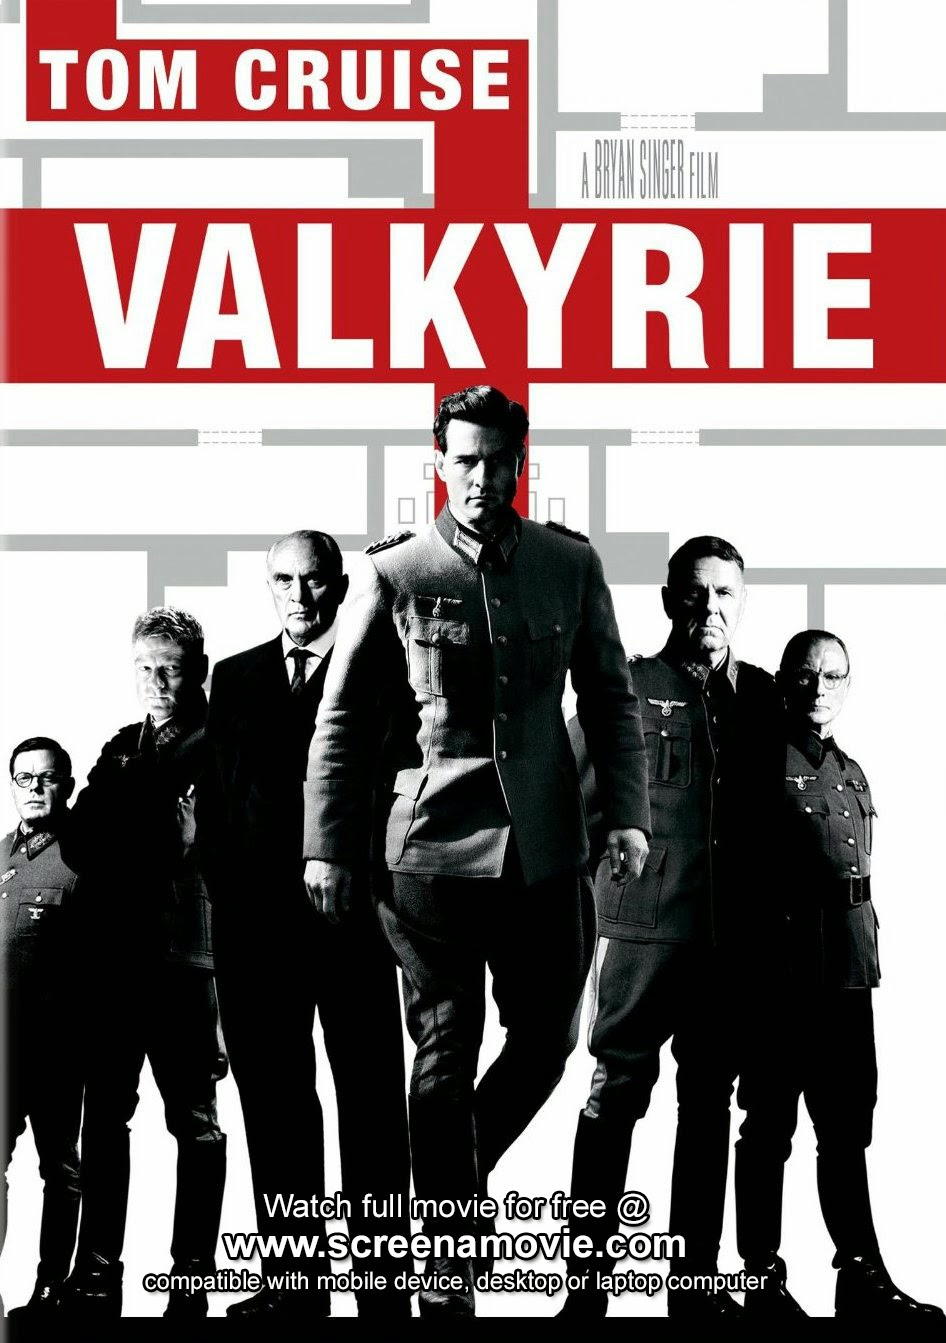 Valkyrie_2008_@screenamovie